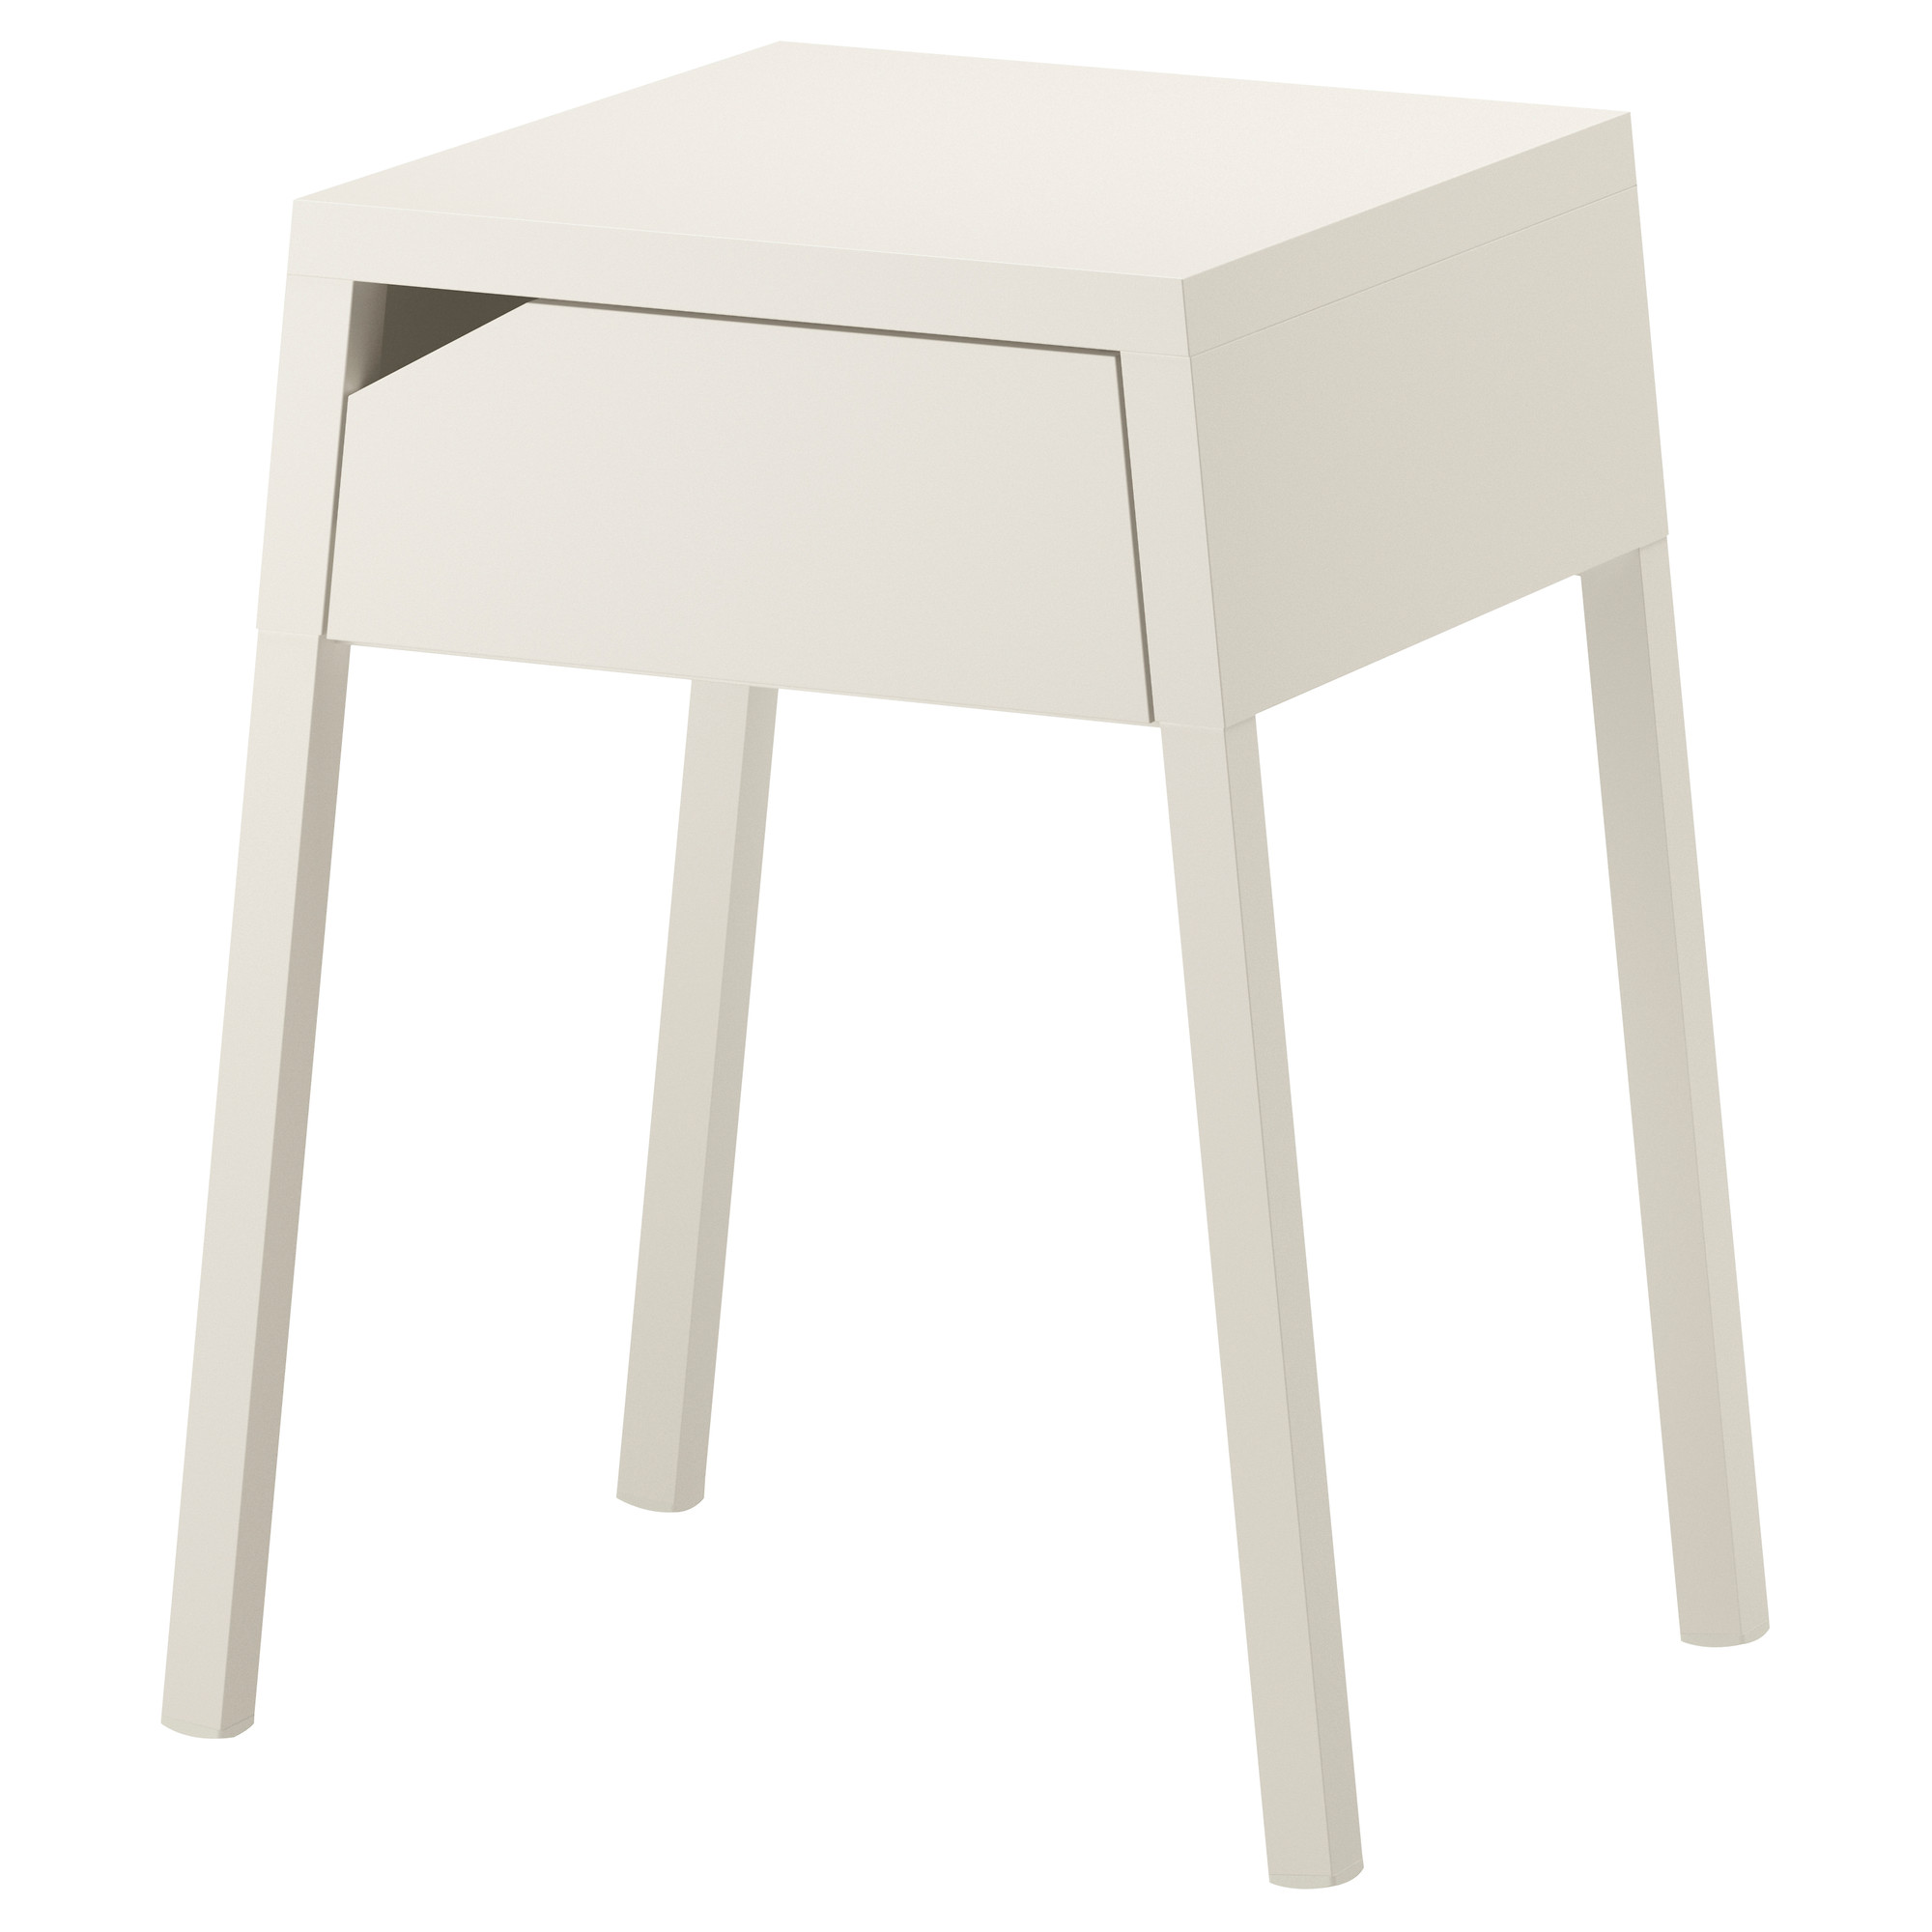 the fantastic amazing ikea white metal nightstand gallery hotxpress cool unpolished small side table with drawer and single fine selje bedside four legs support design ideas